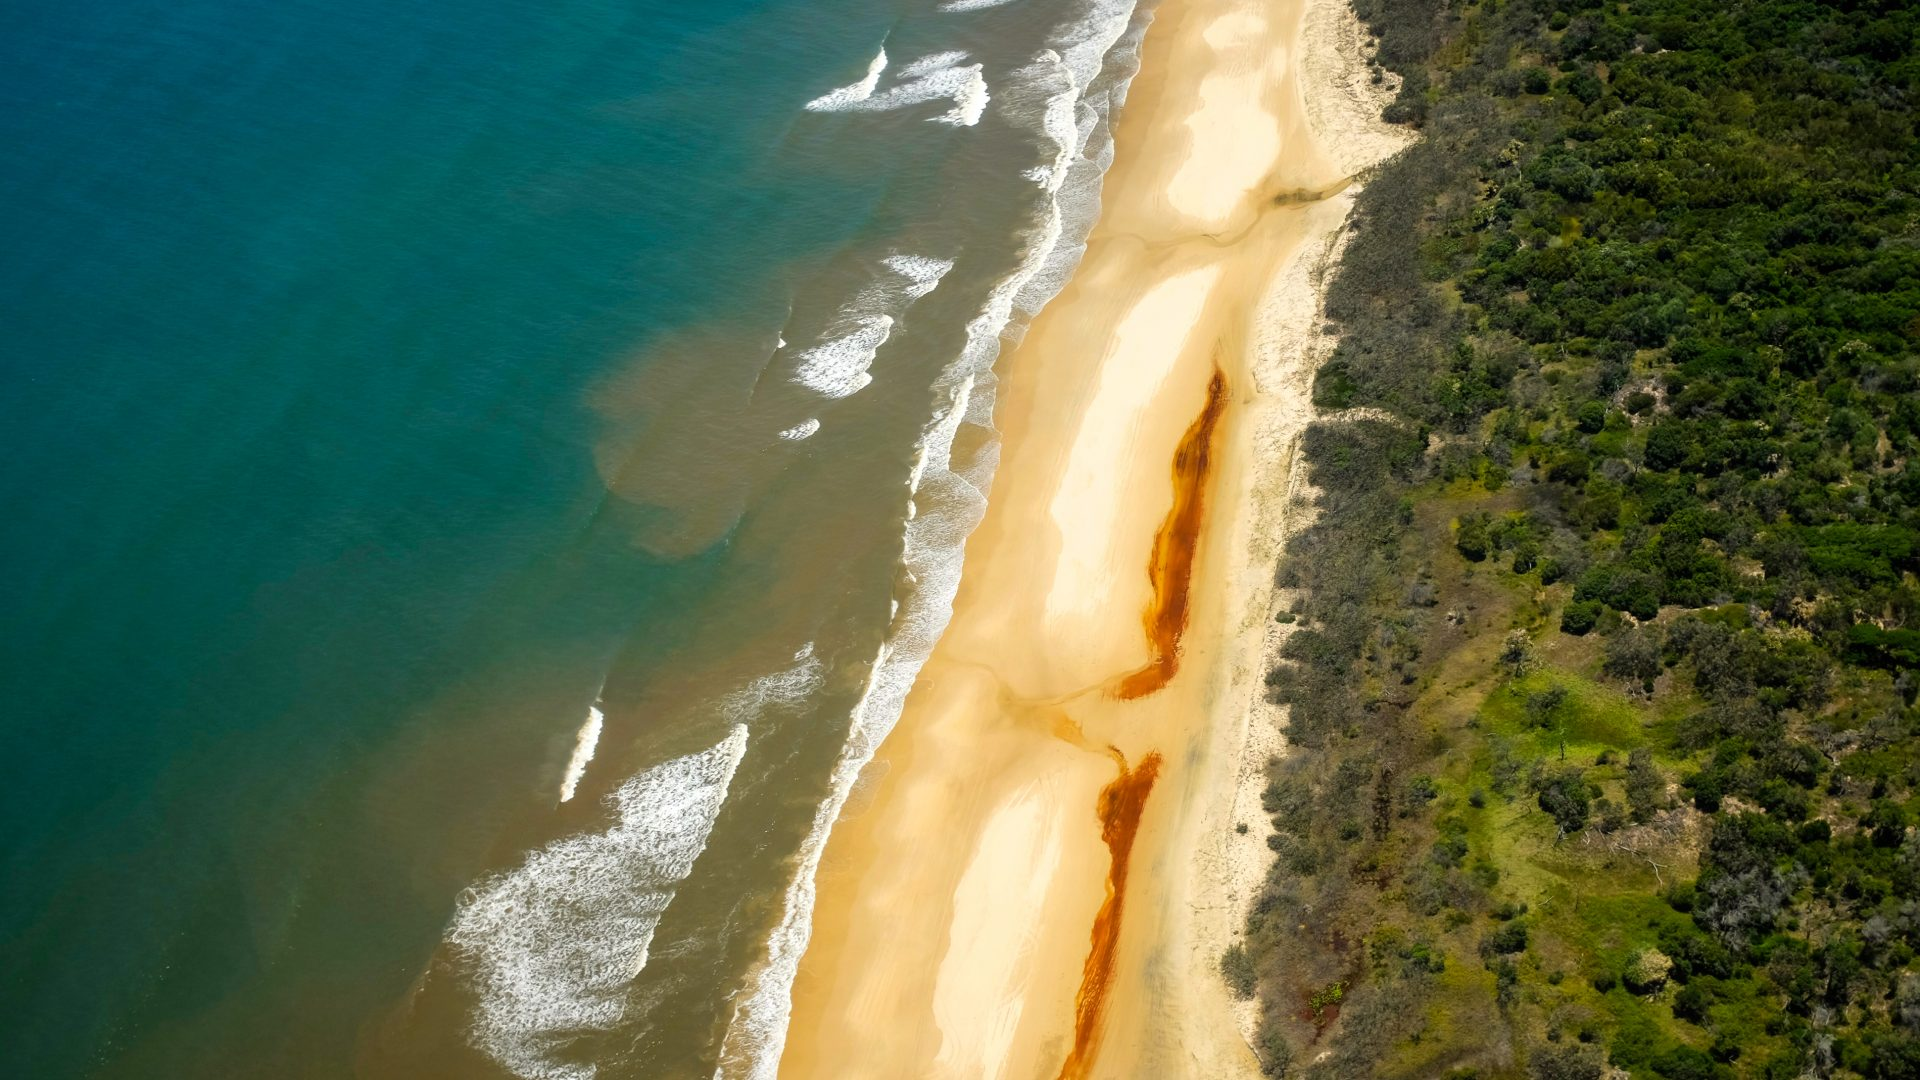 An aerial view over the green waters and yellow sands of a beach in Australia.